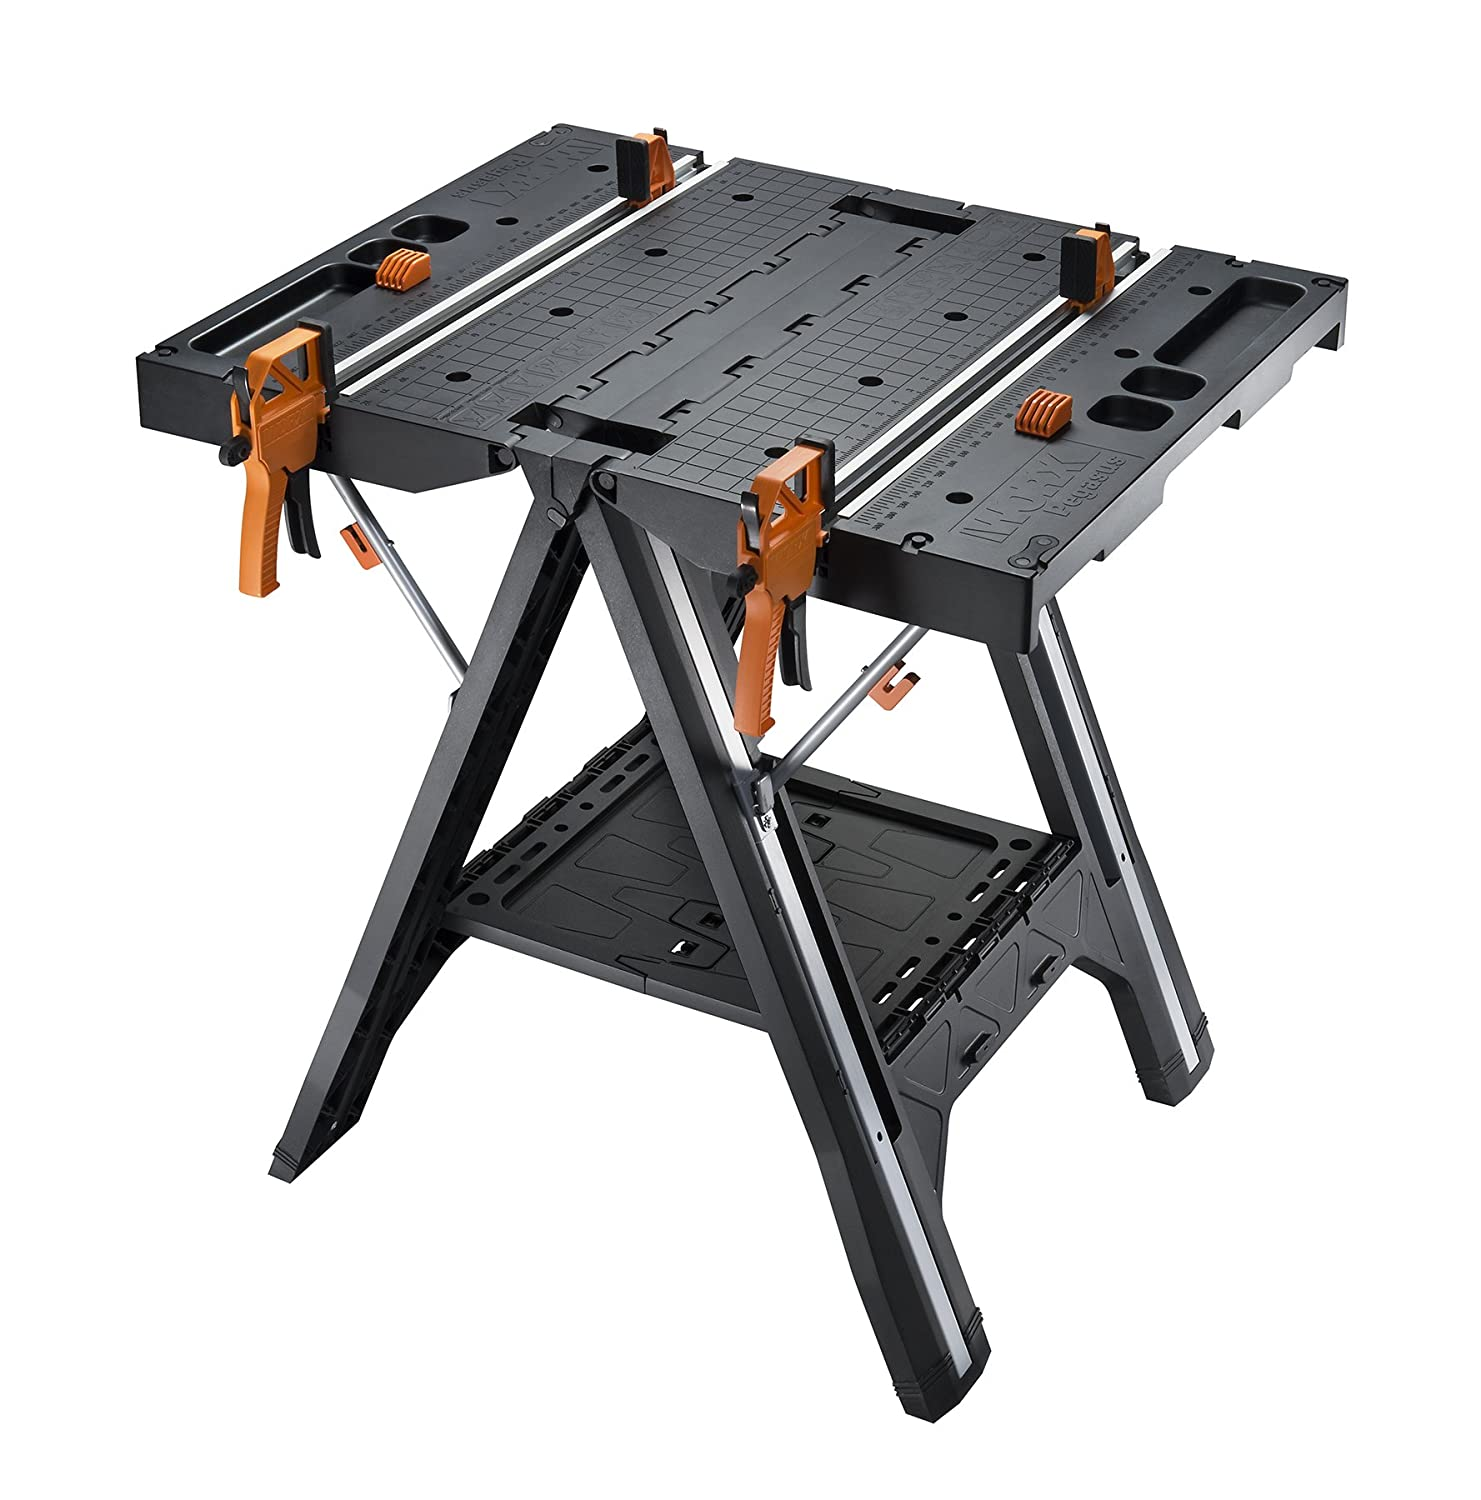 WORX Pegasus Multi-Function Work Table for DIY